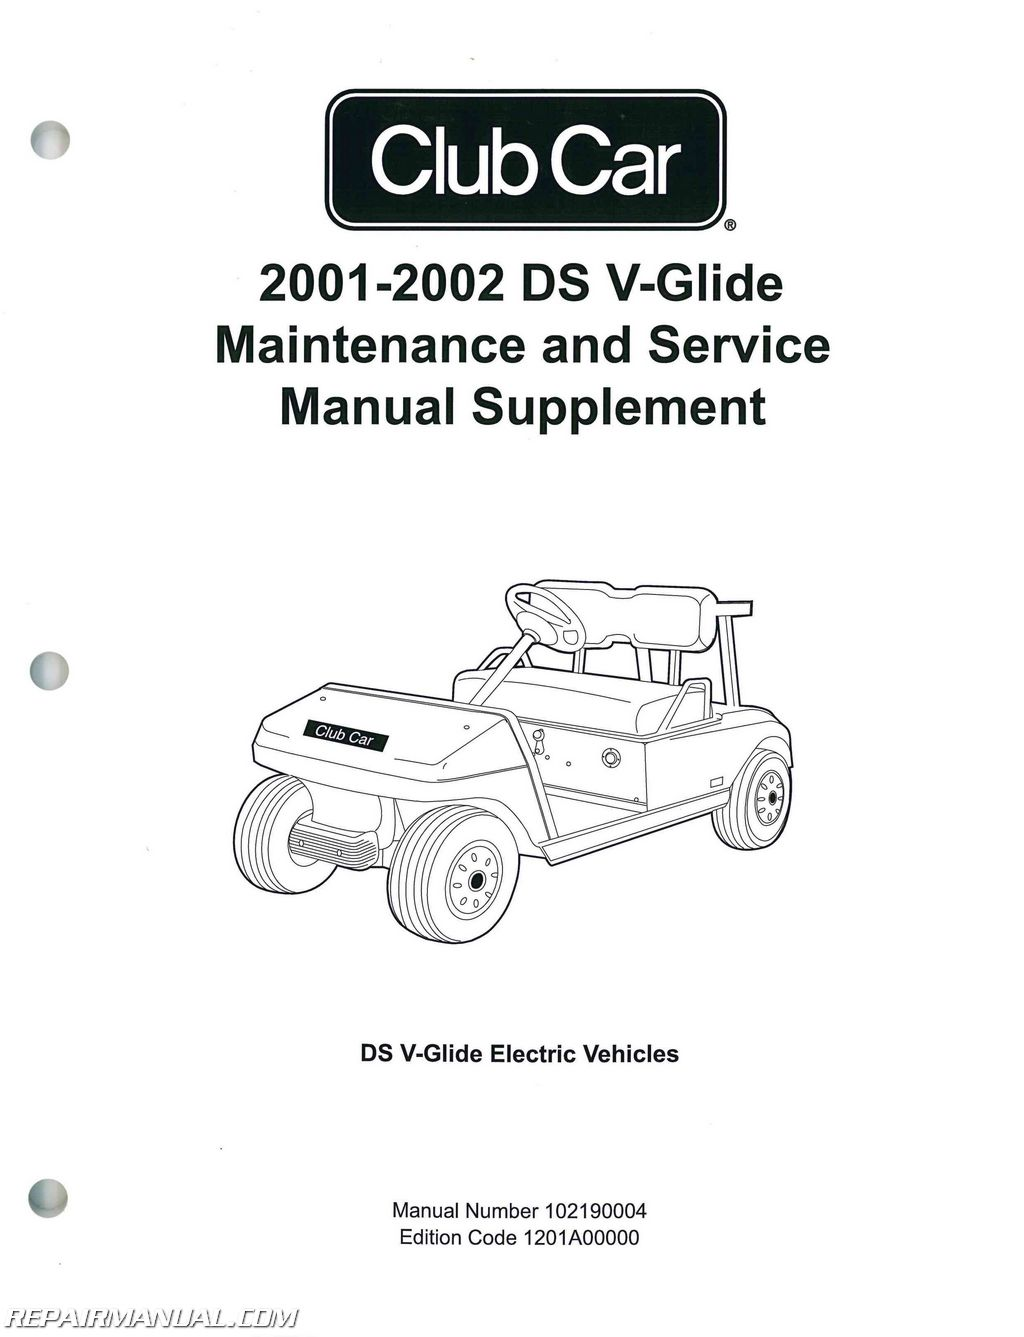 2001-2002-club-car-ds-v-glide-golf-car -maintenance-and-service-manual-supplement jpg